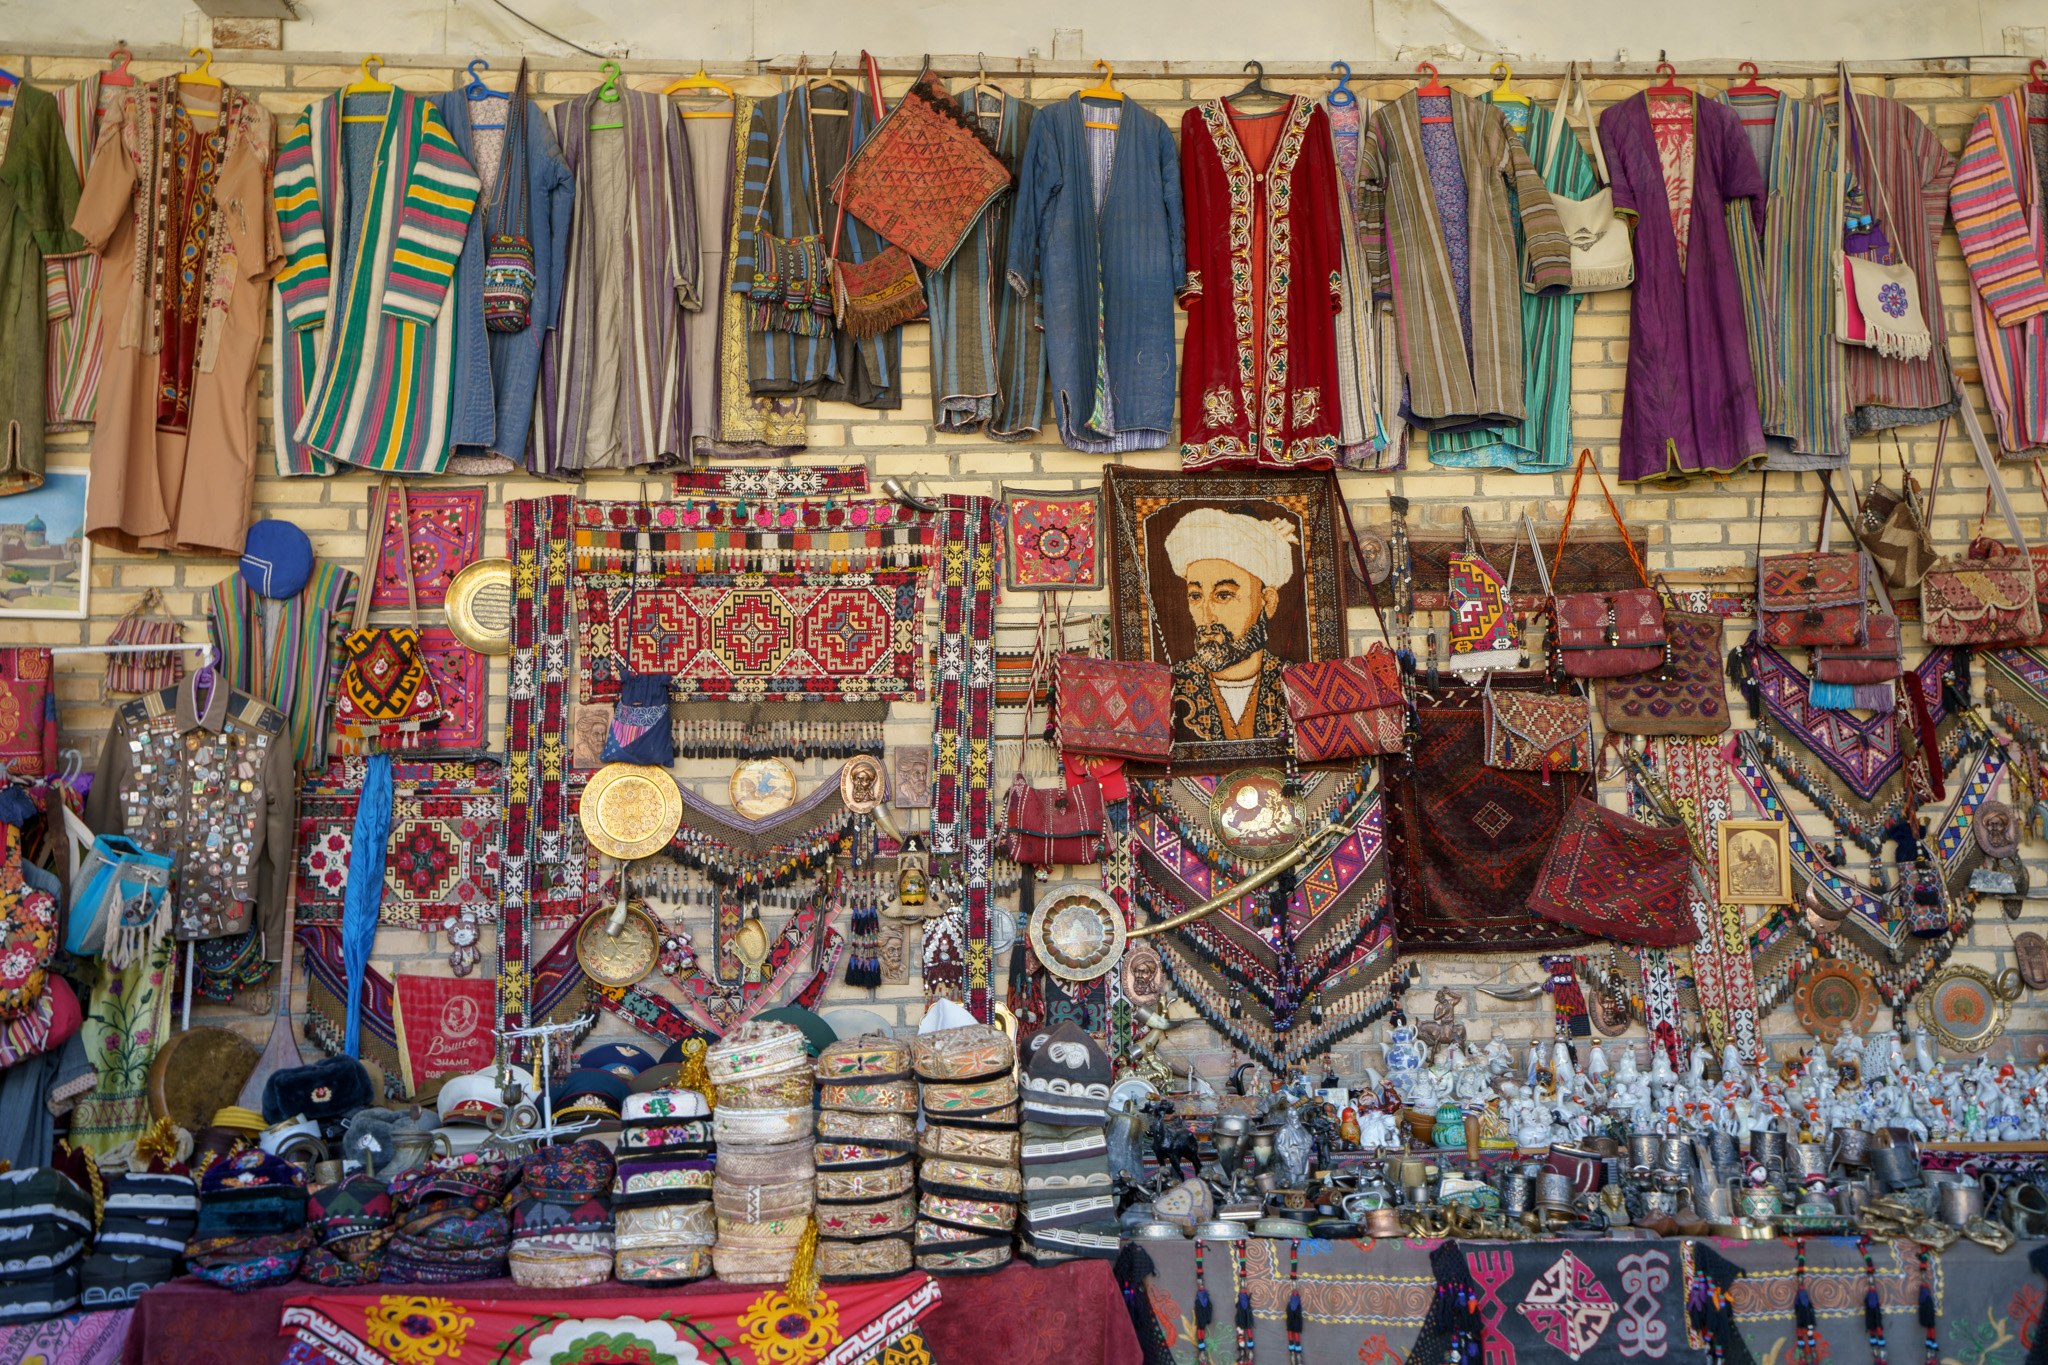 Uzbek souvenirs for sale in Bukhara